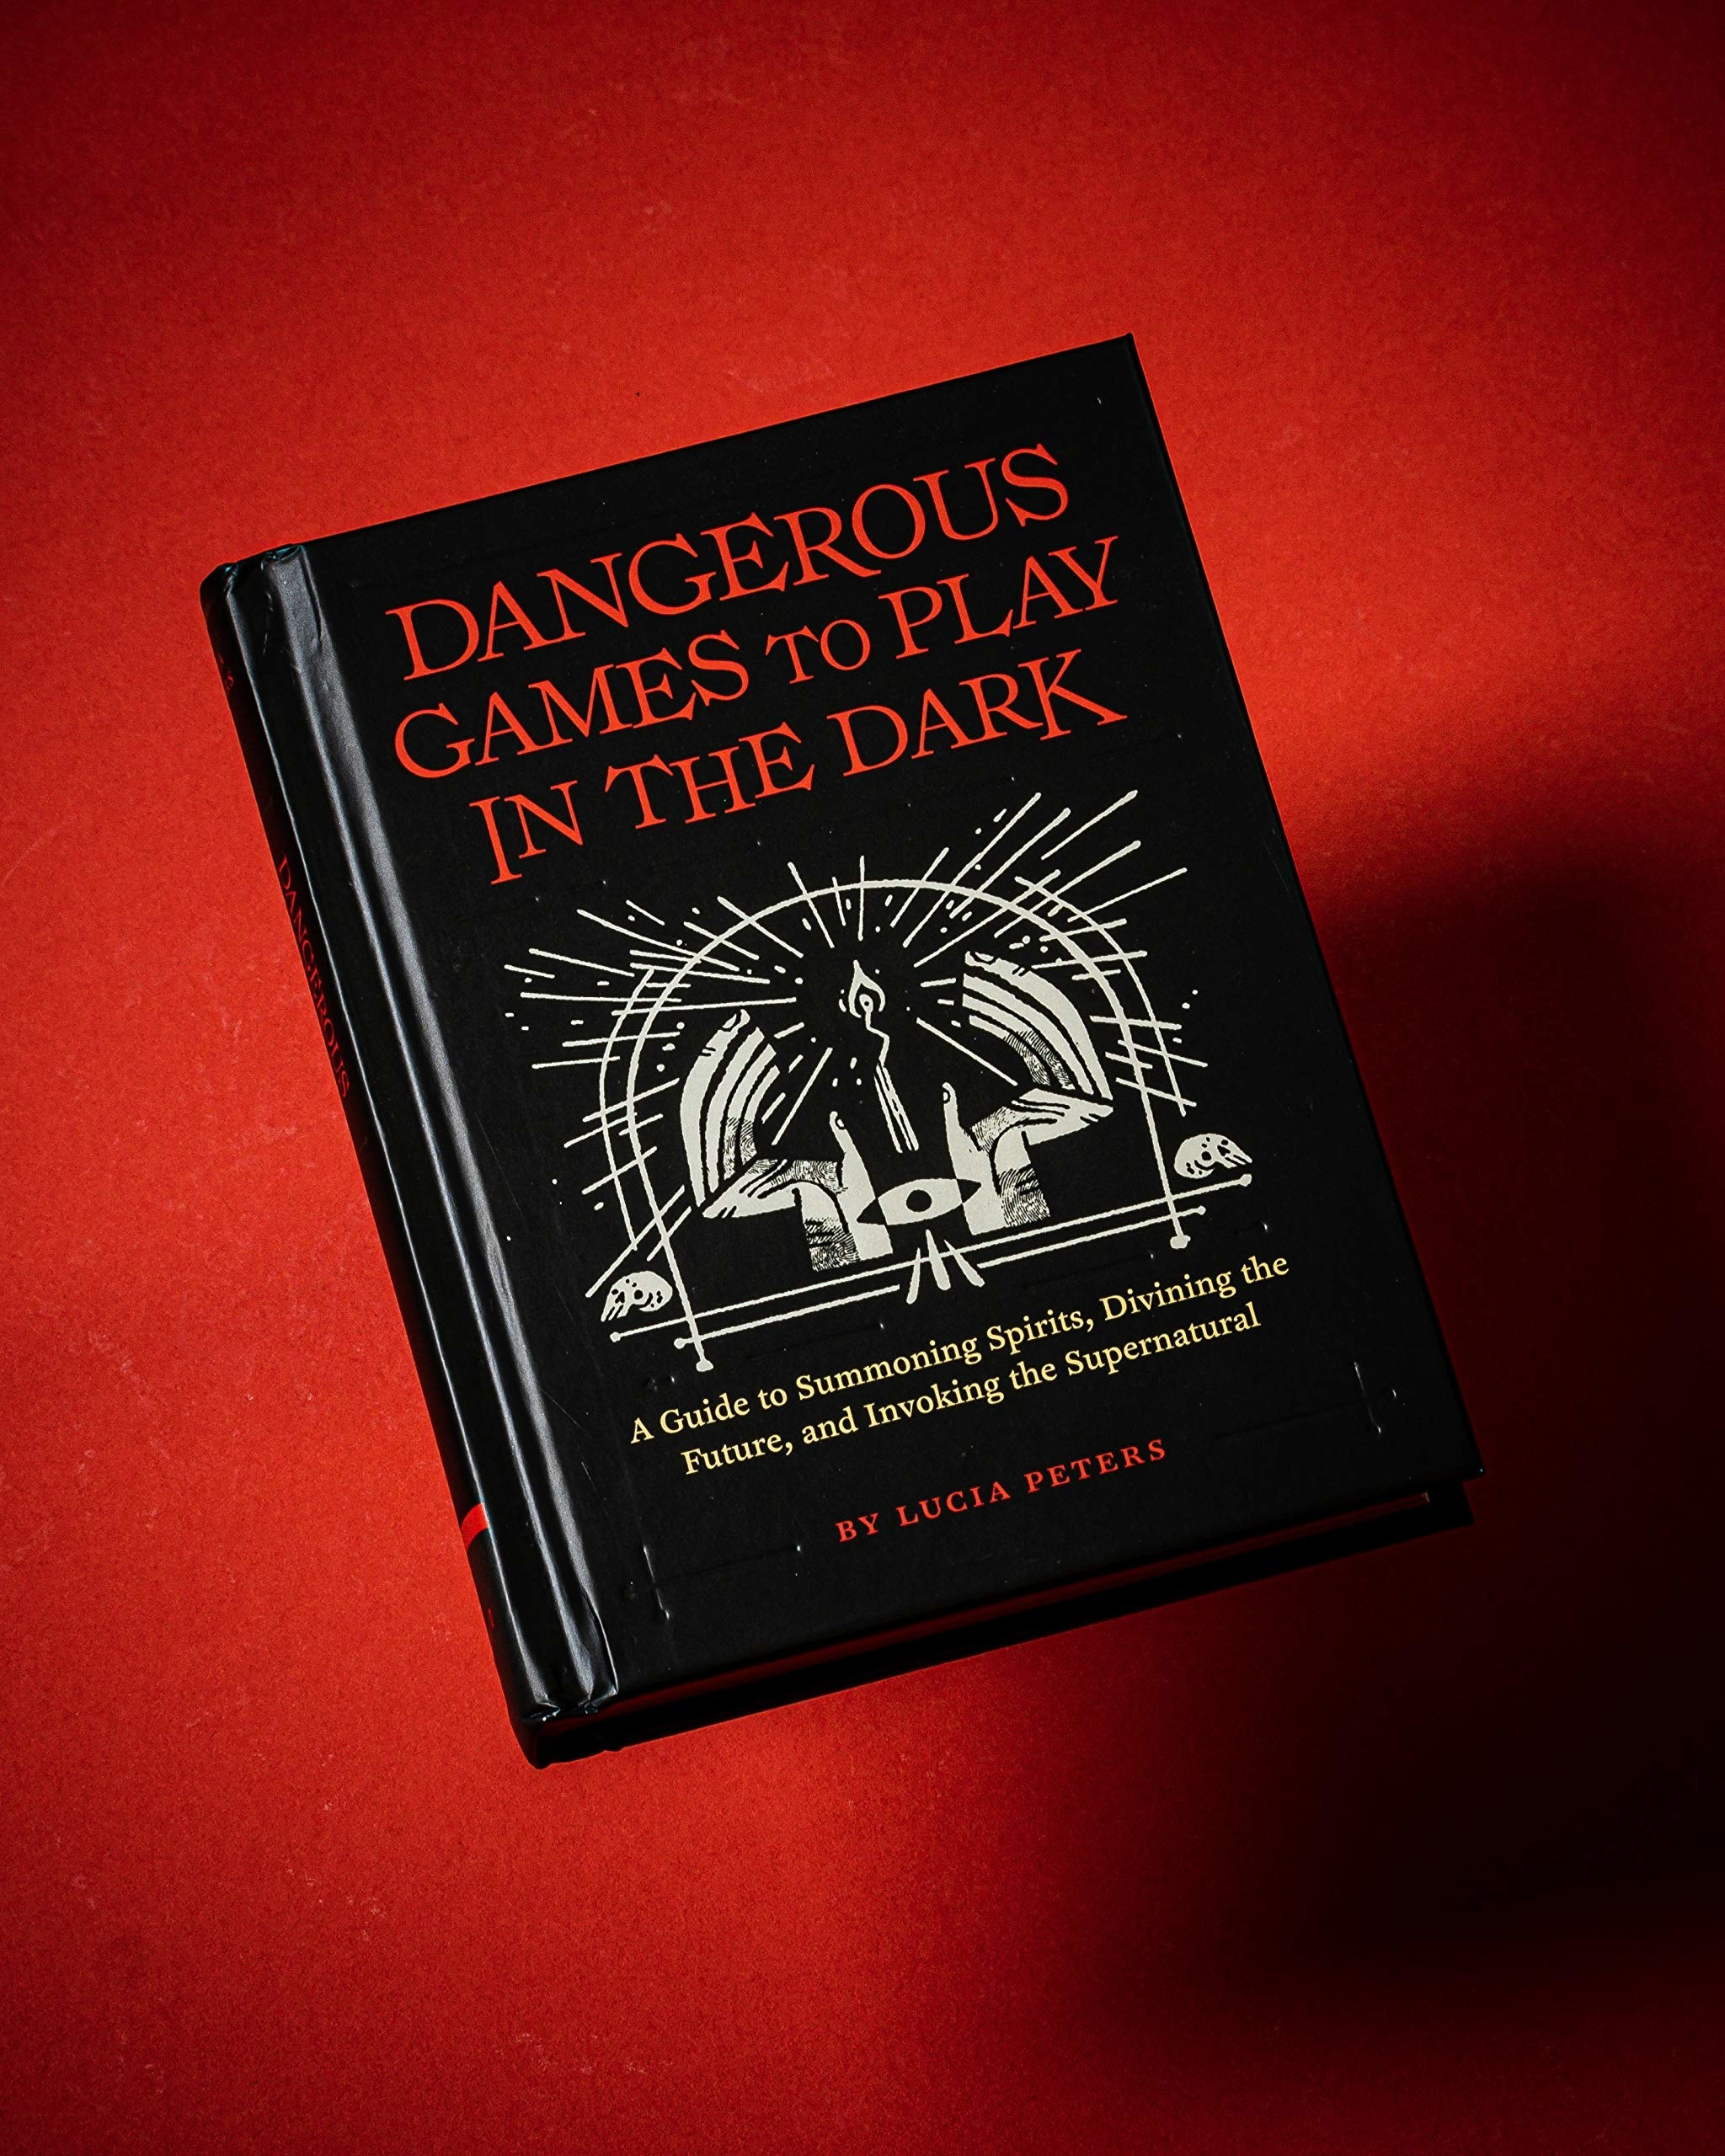 The book against a red and shadowy back drop